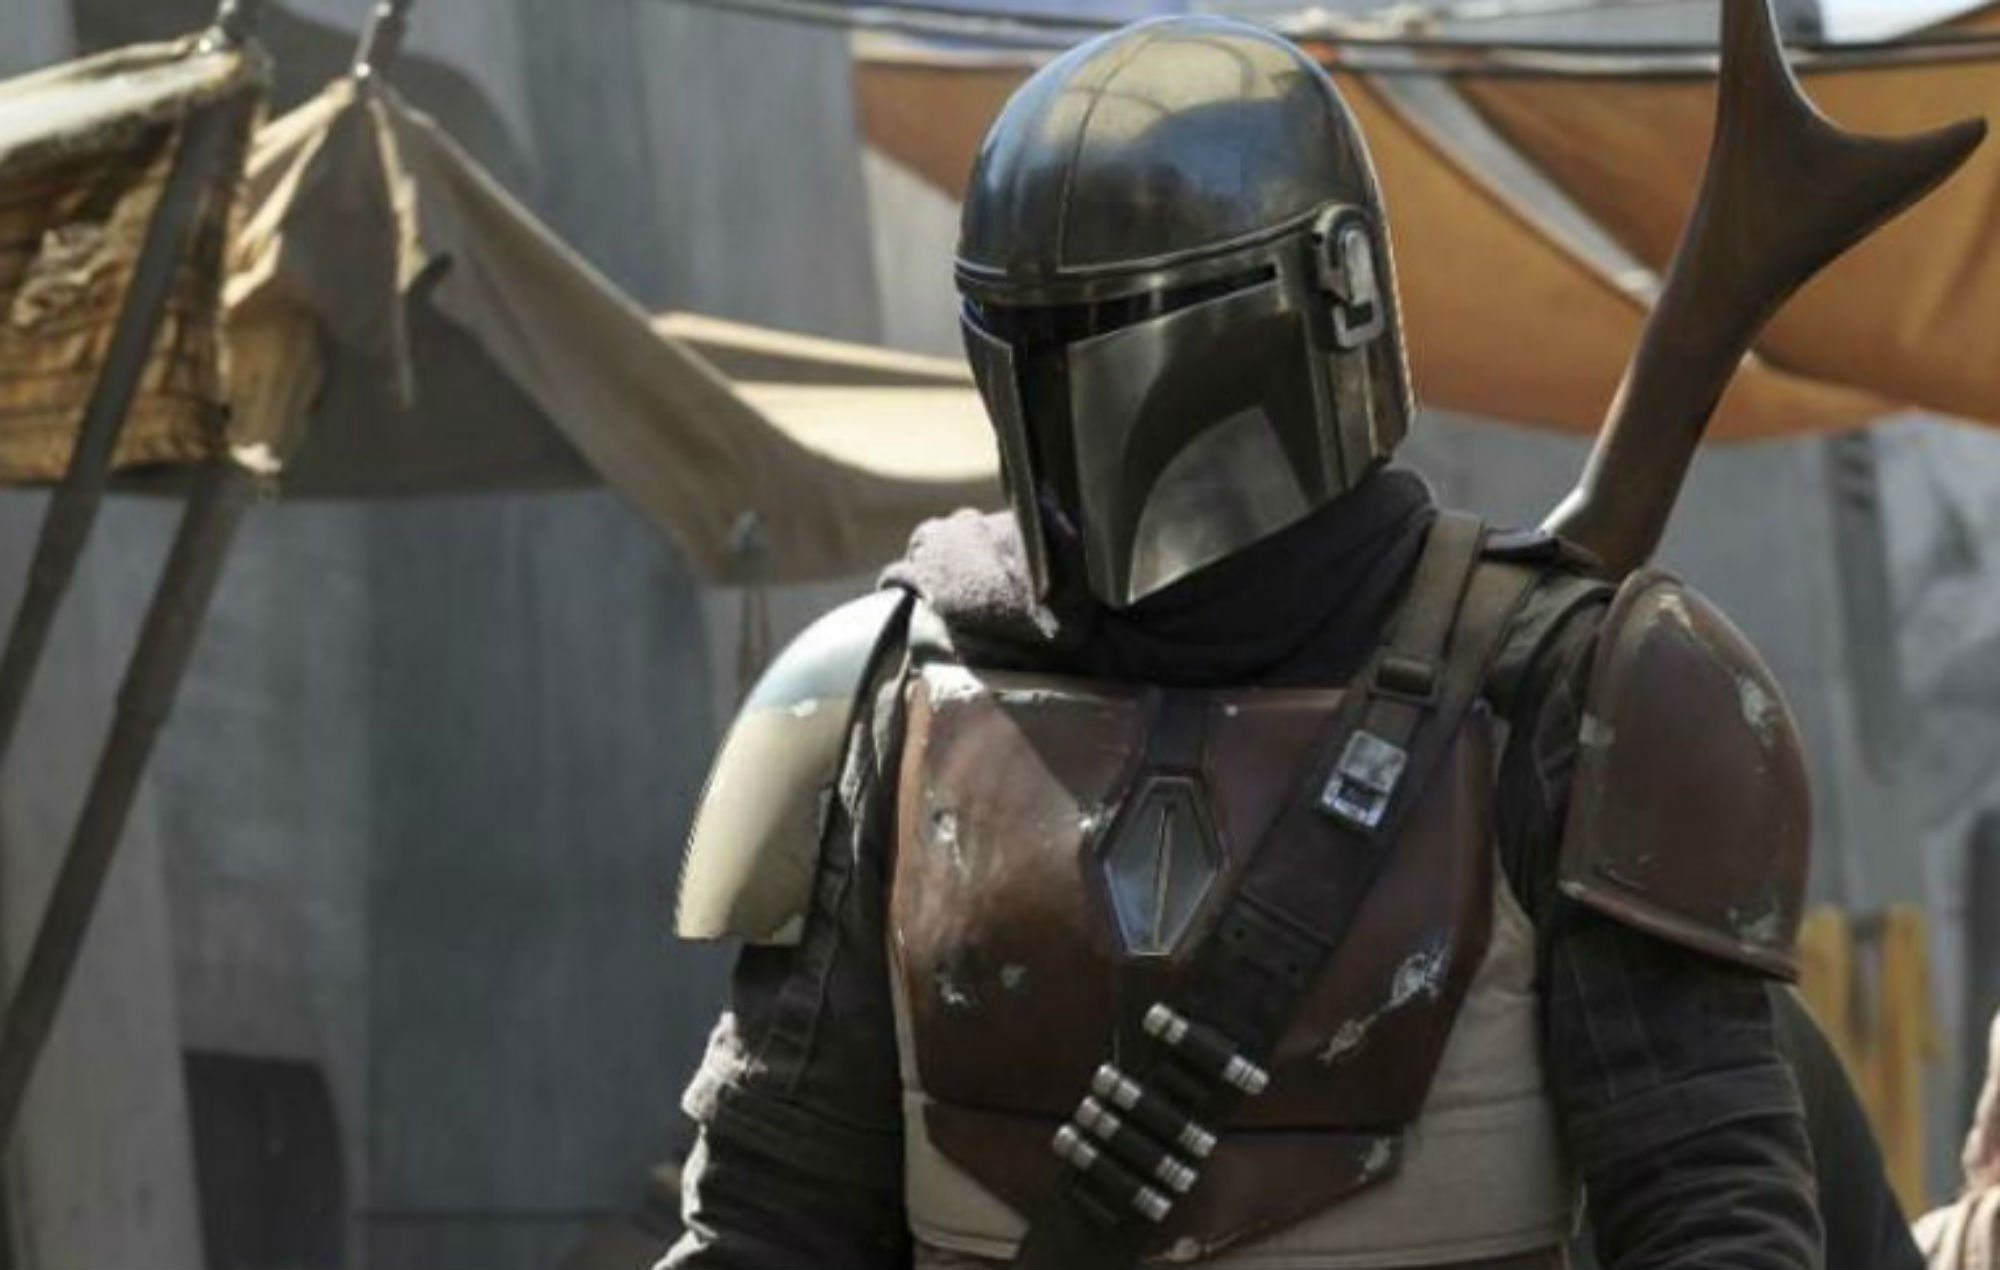 'The Mandalorian' episode 1: fans react as new 'Star Wars' TV show launches on Disney+